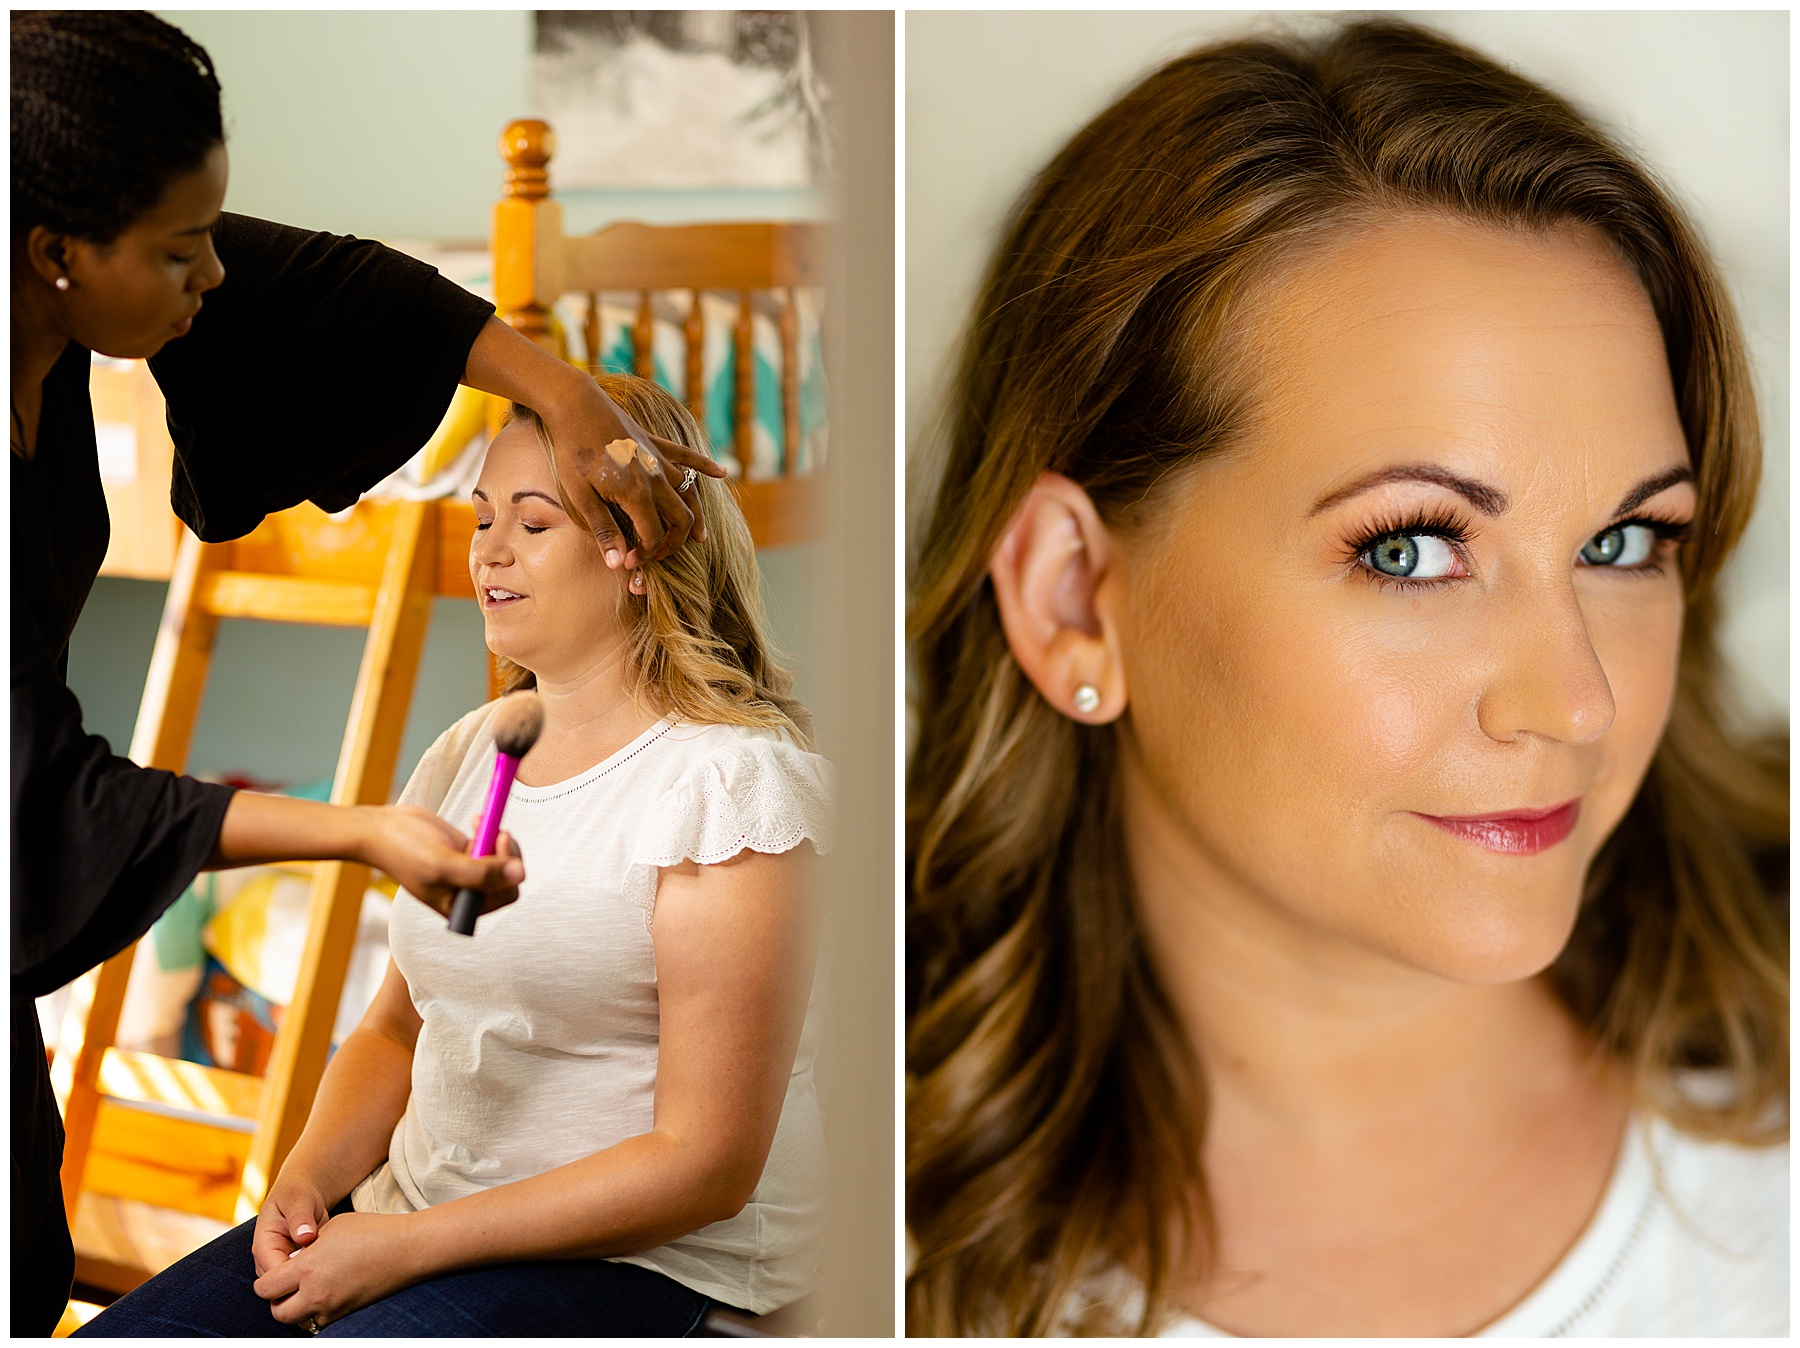 Here are some teaser behind the scenes photos of make-up and a headshot of Millie!